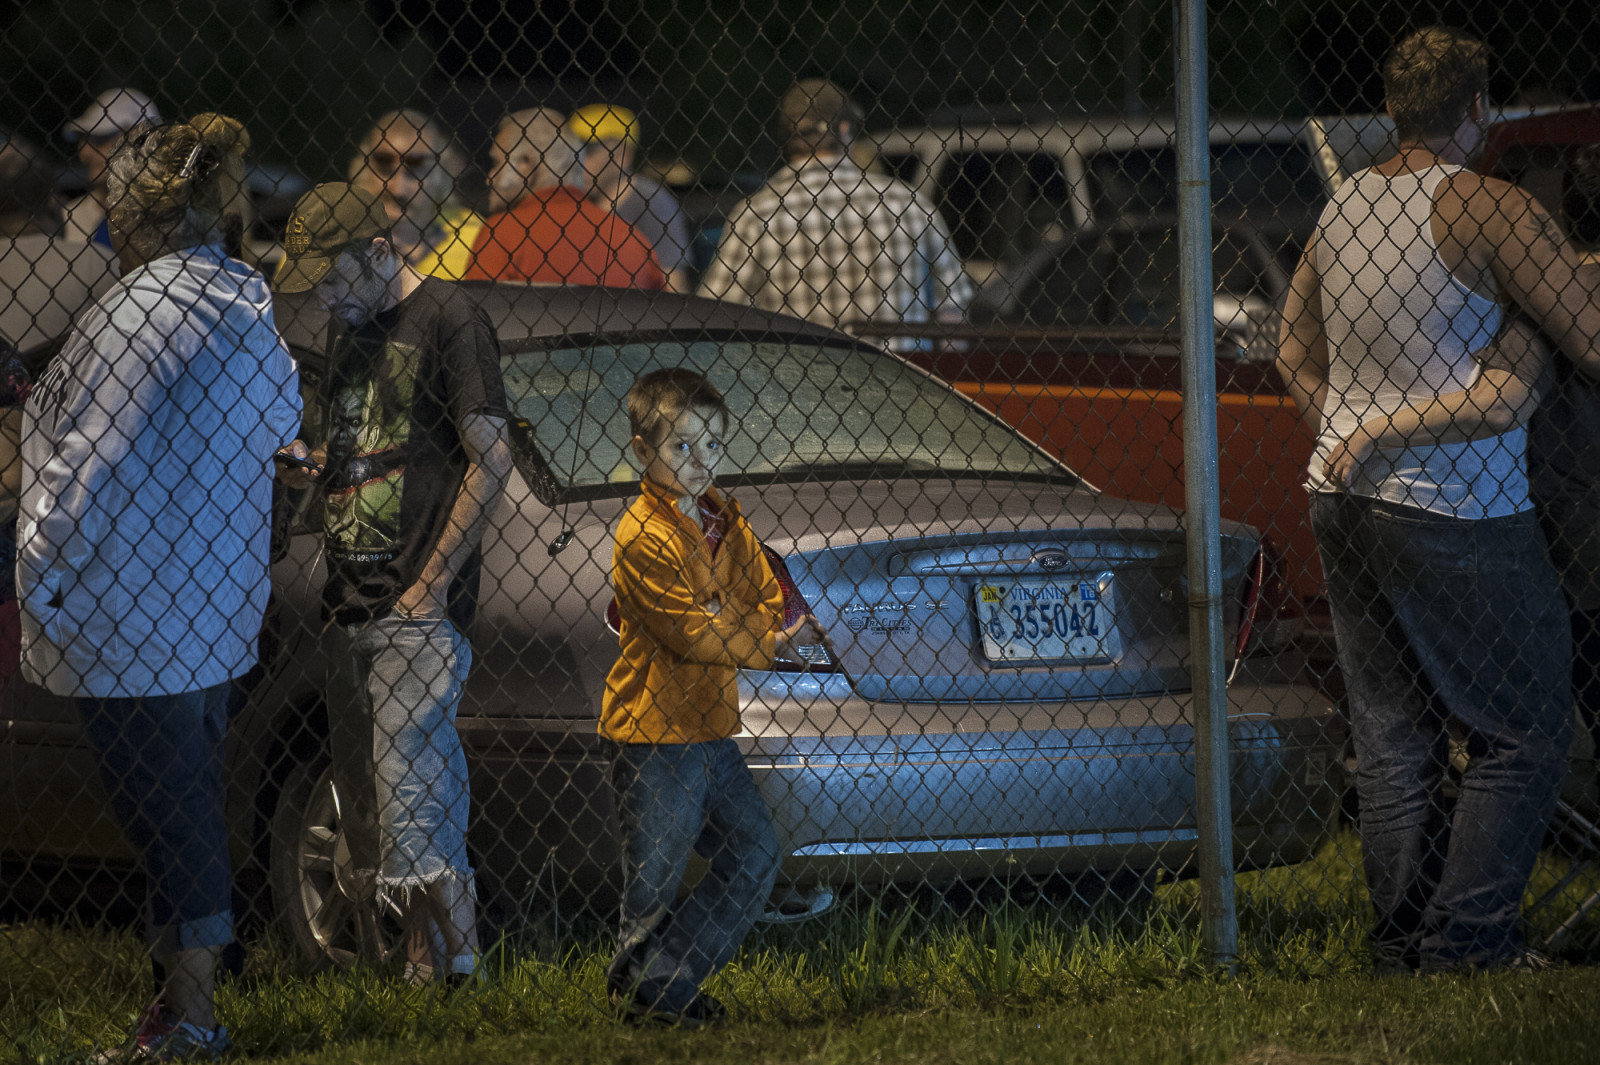 People wait in the parking lot in the early morning at the Wise County Fairgrounds where they hope to receive free medical care at the 16th annual Remote Area Medical (RAM), clinic in Wise, Virginia. Photo: Pete Marovich/Bloomberg